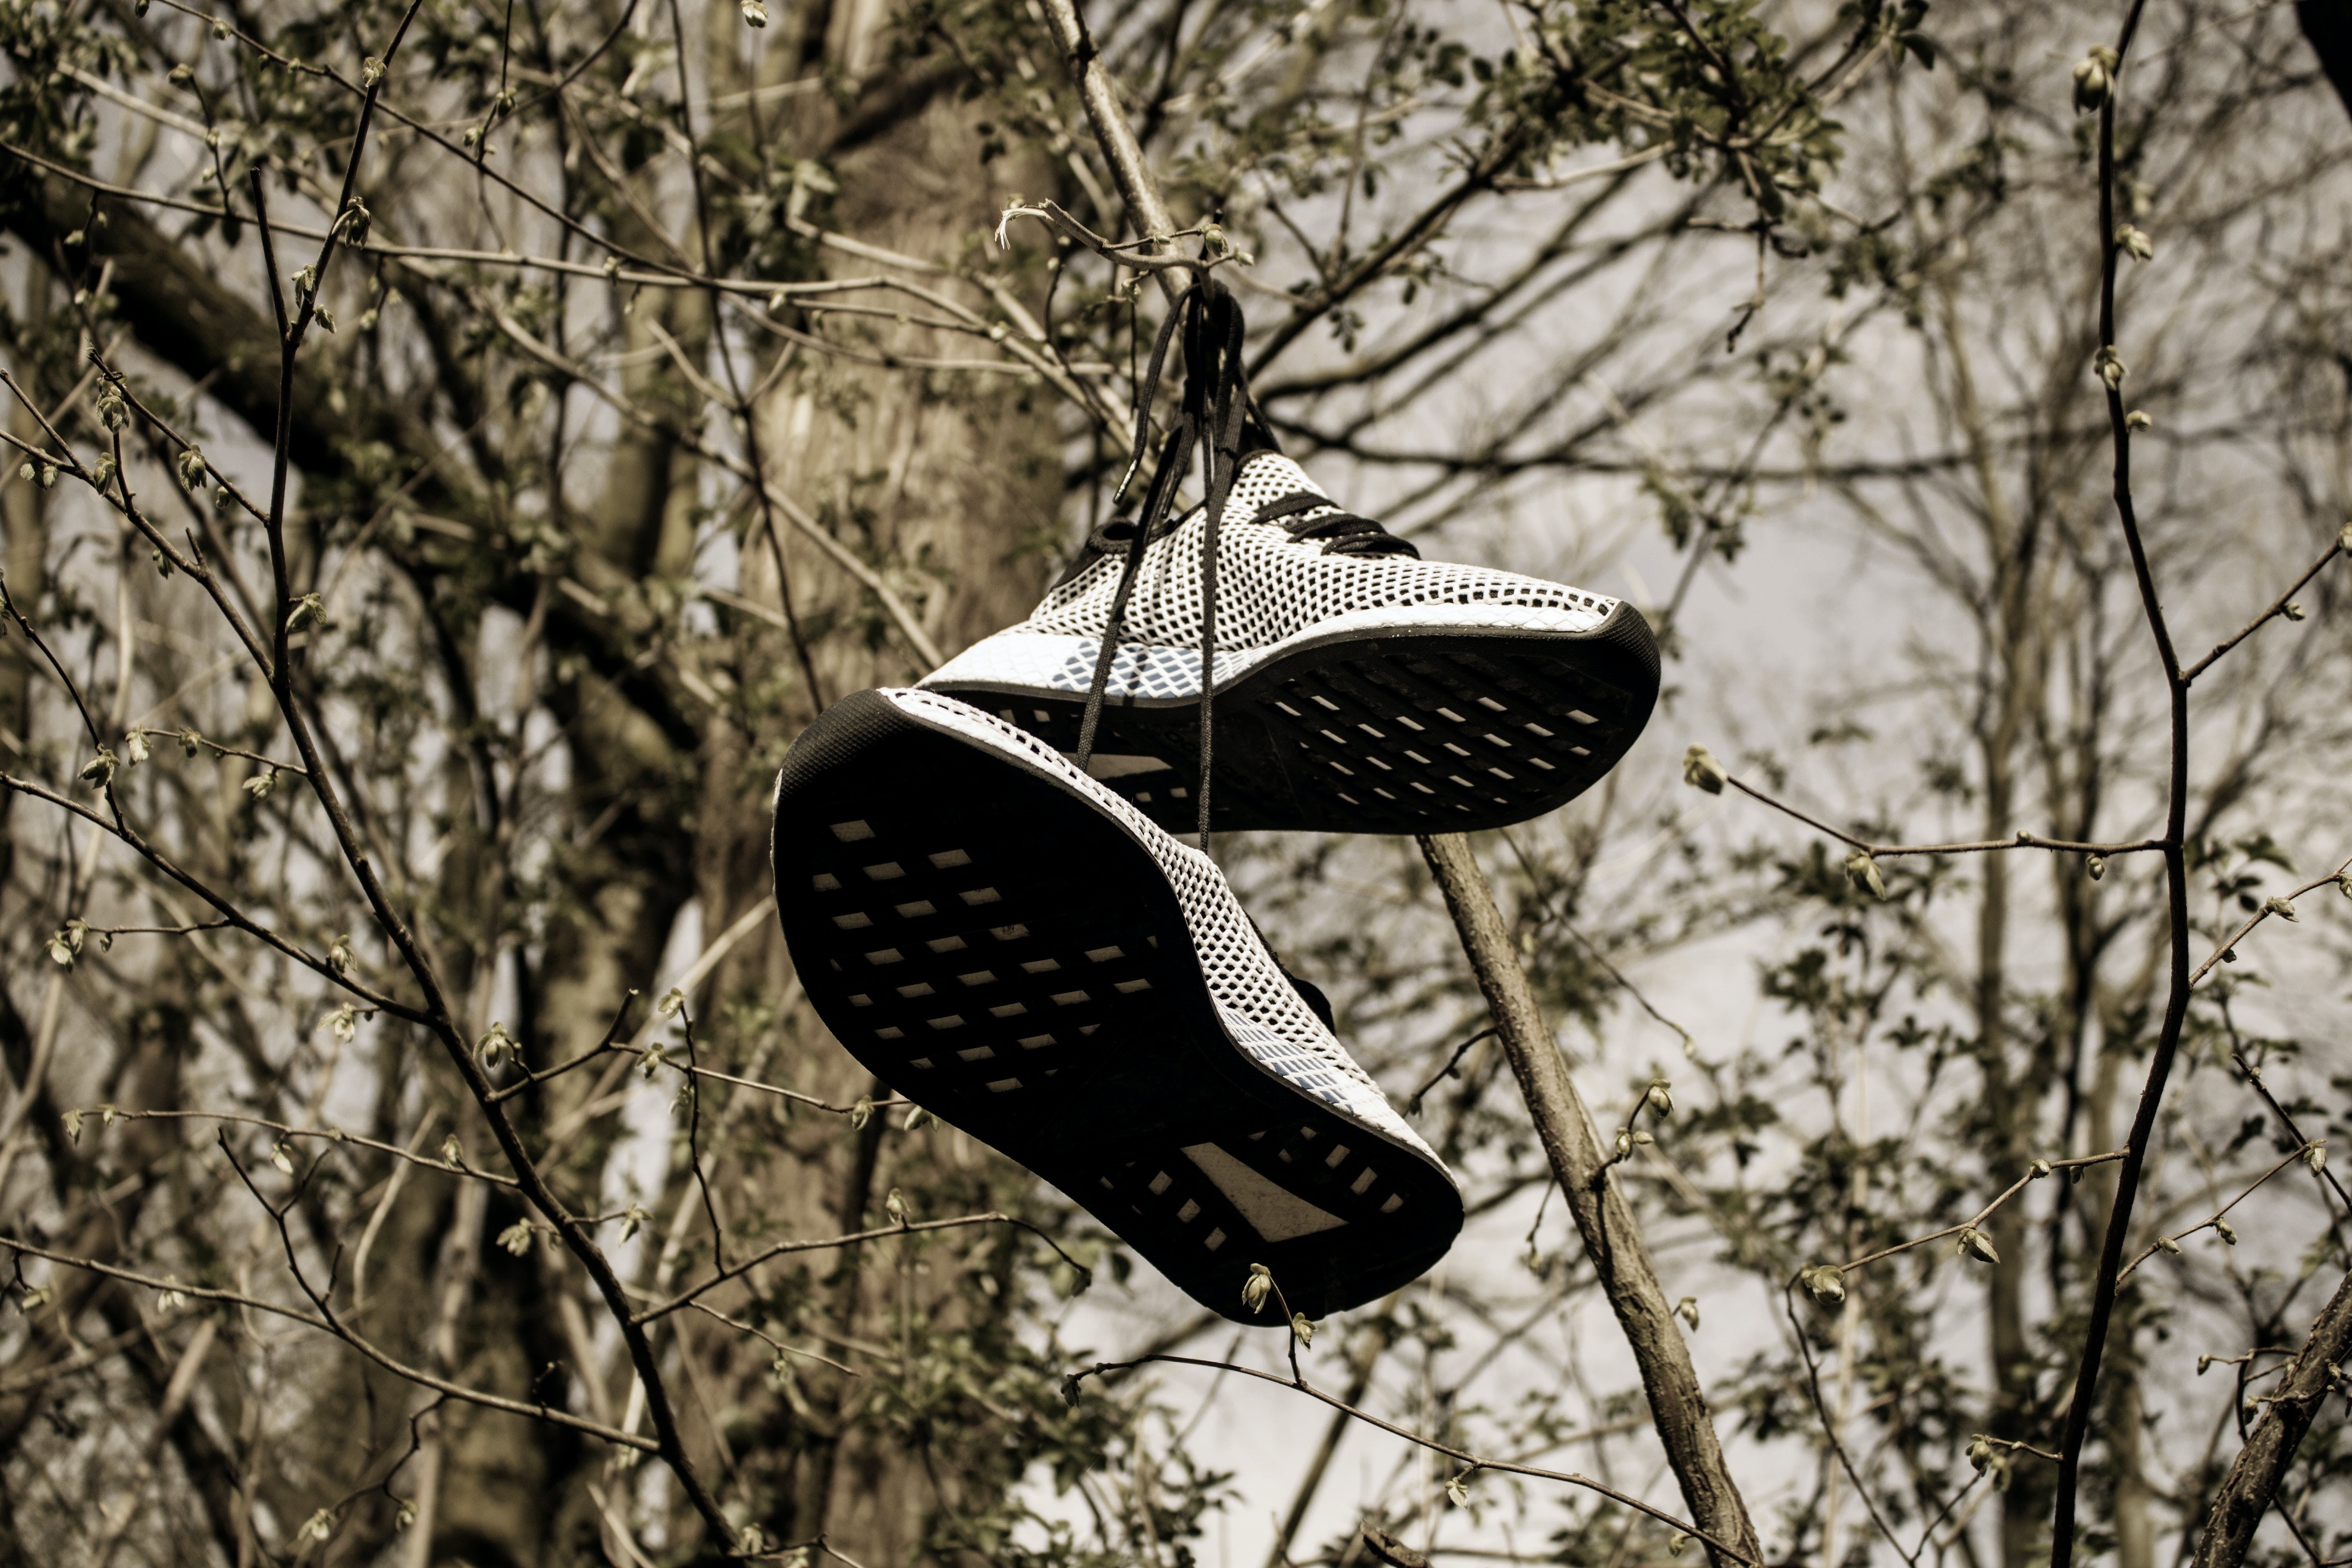 Pair of Grey Low-top Sneakers Hanged on Tree